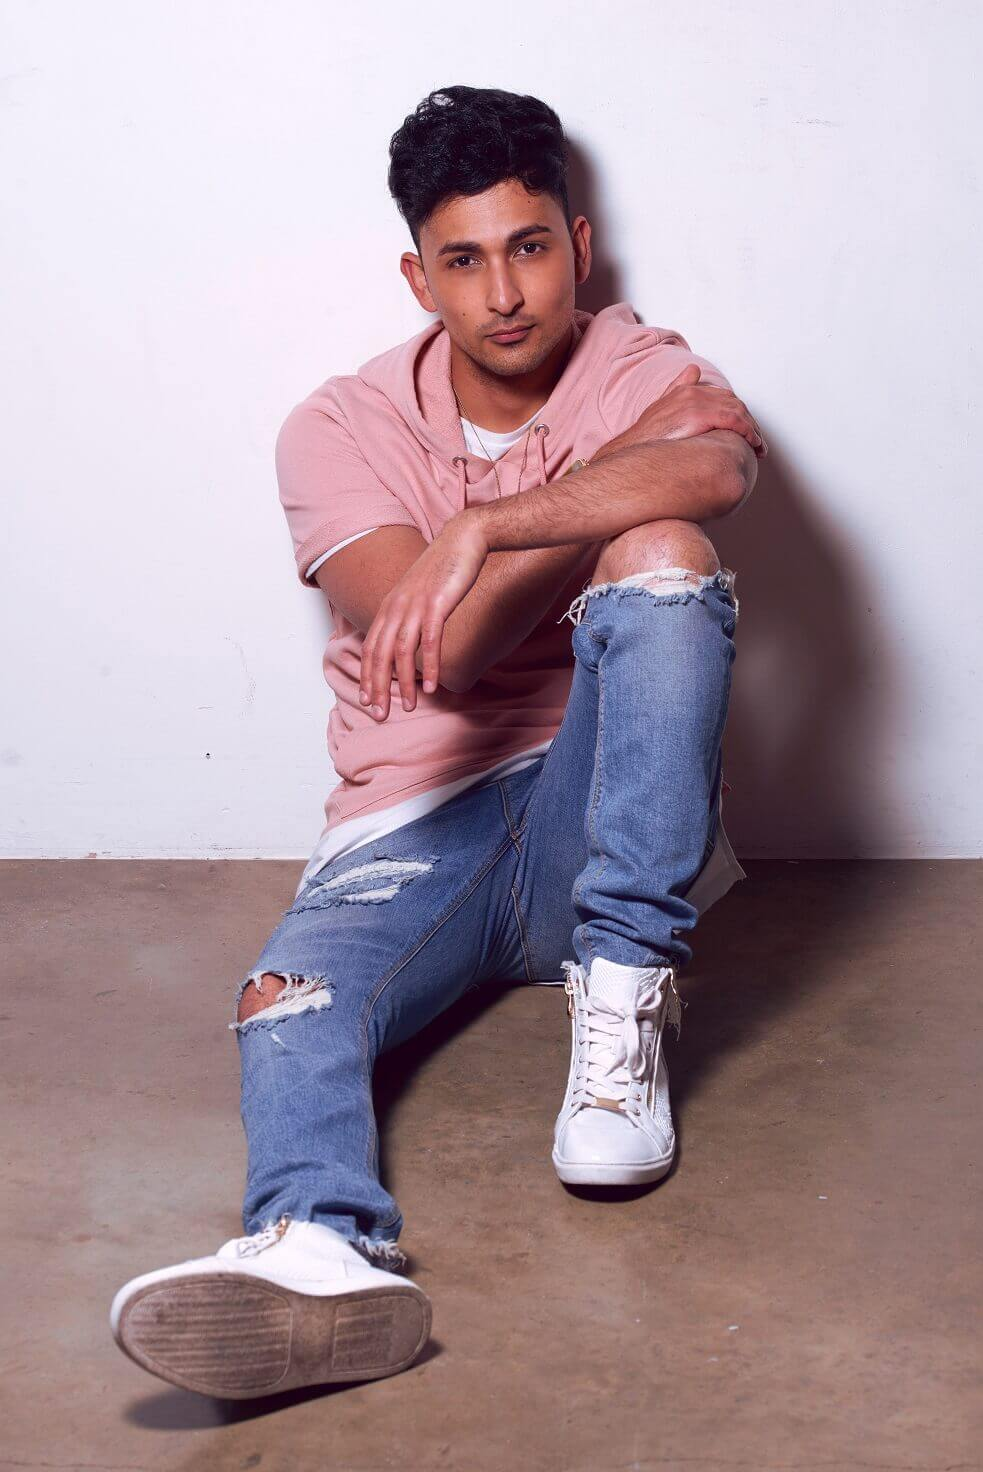 Zack Knight to perform in SA